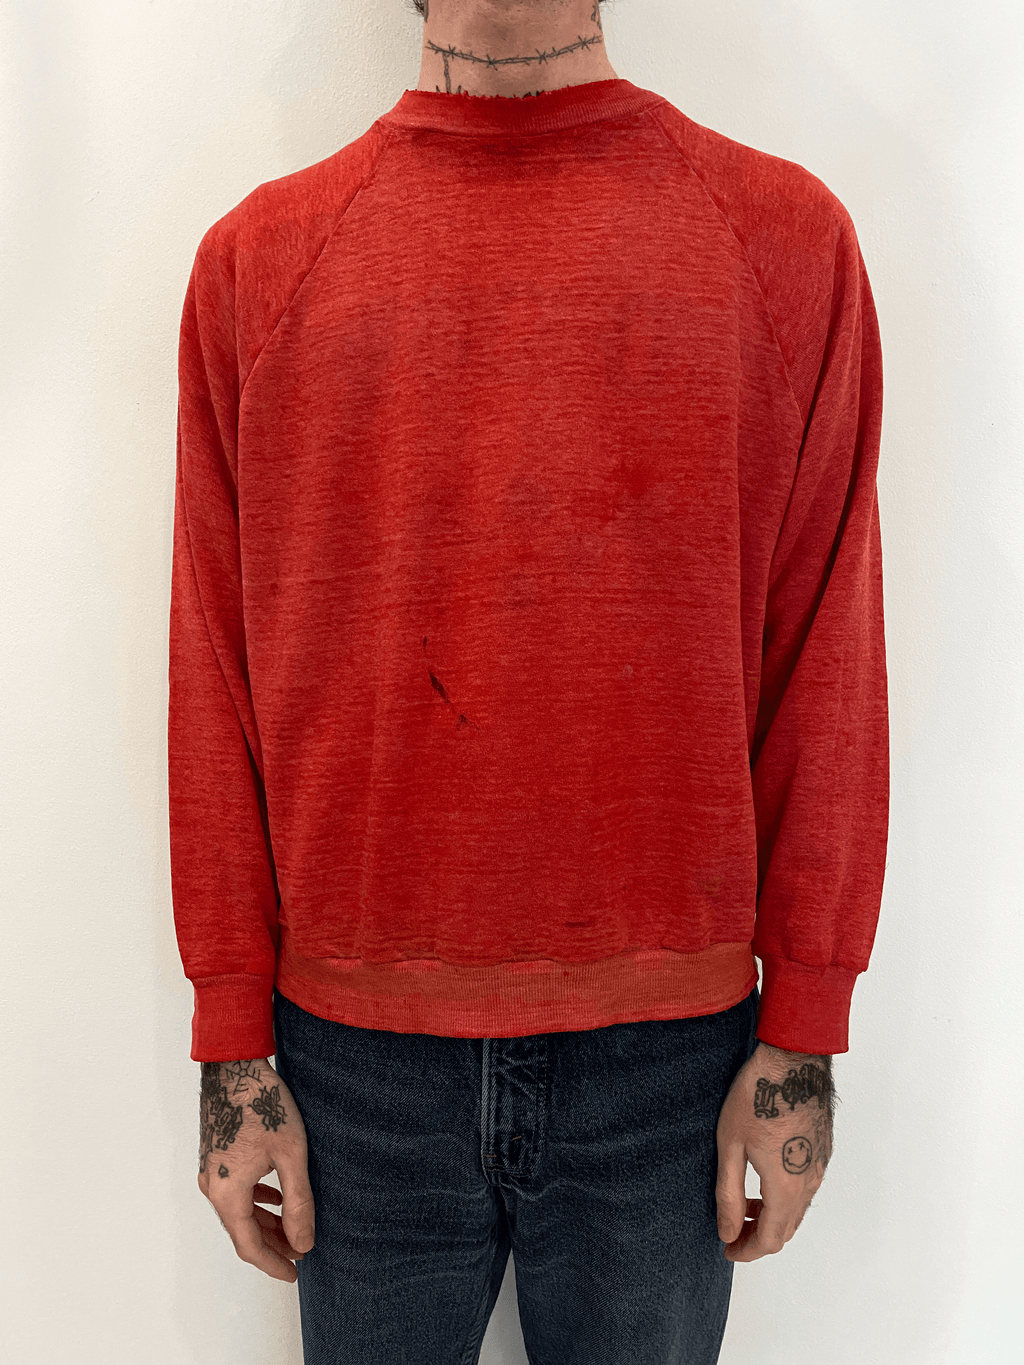 1970's Sun Faded Paper Thin Crewneck (M/L)